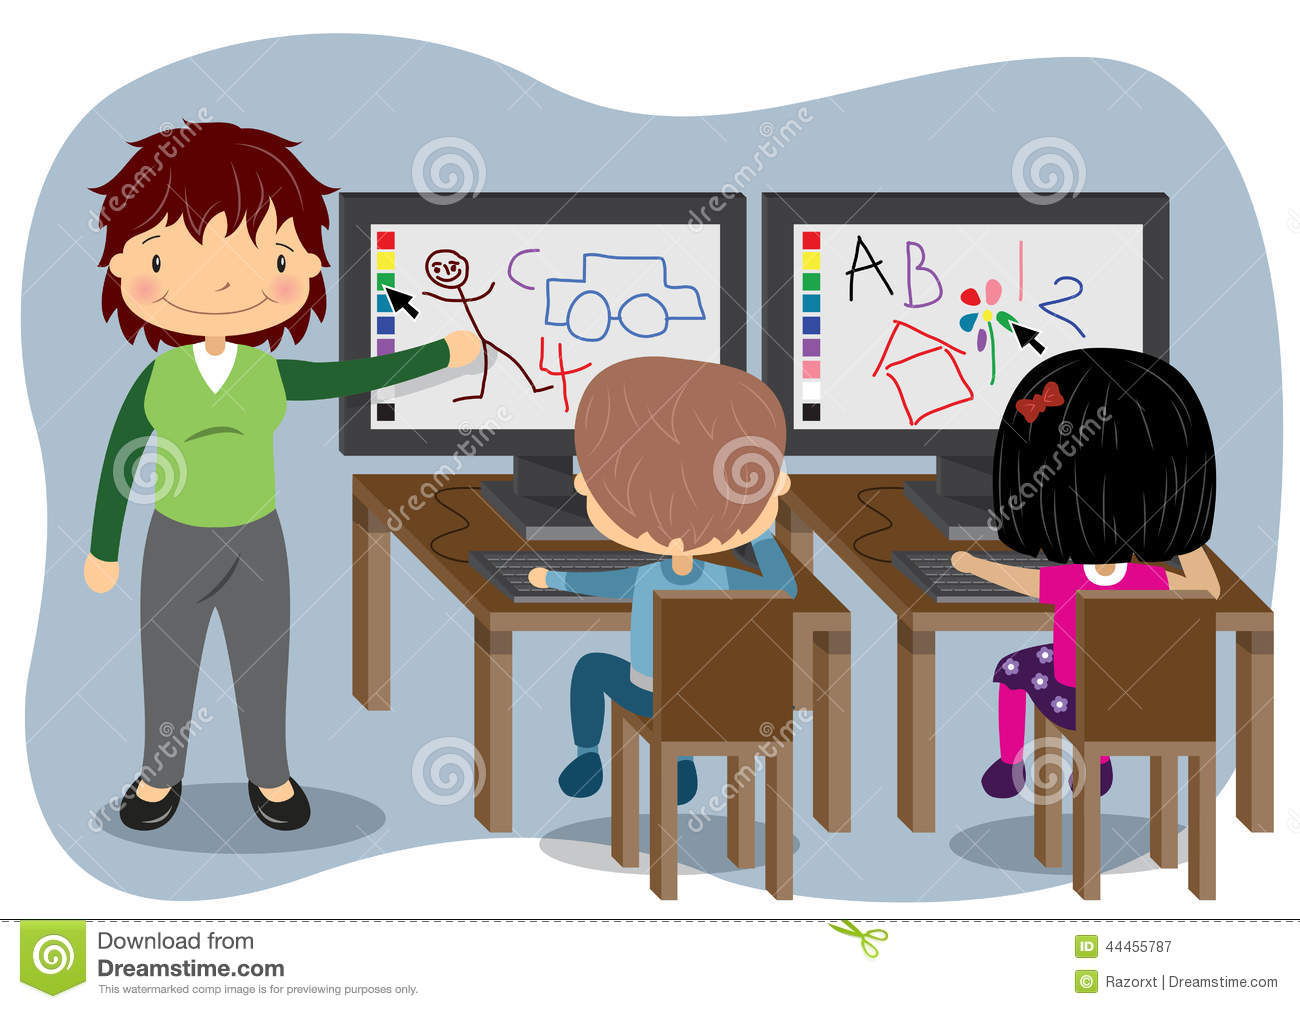 Computer in school clipart clip transparent download Computers in school clipart - ClipartFest clip transparent download